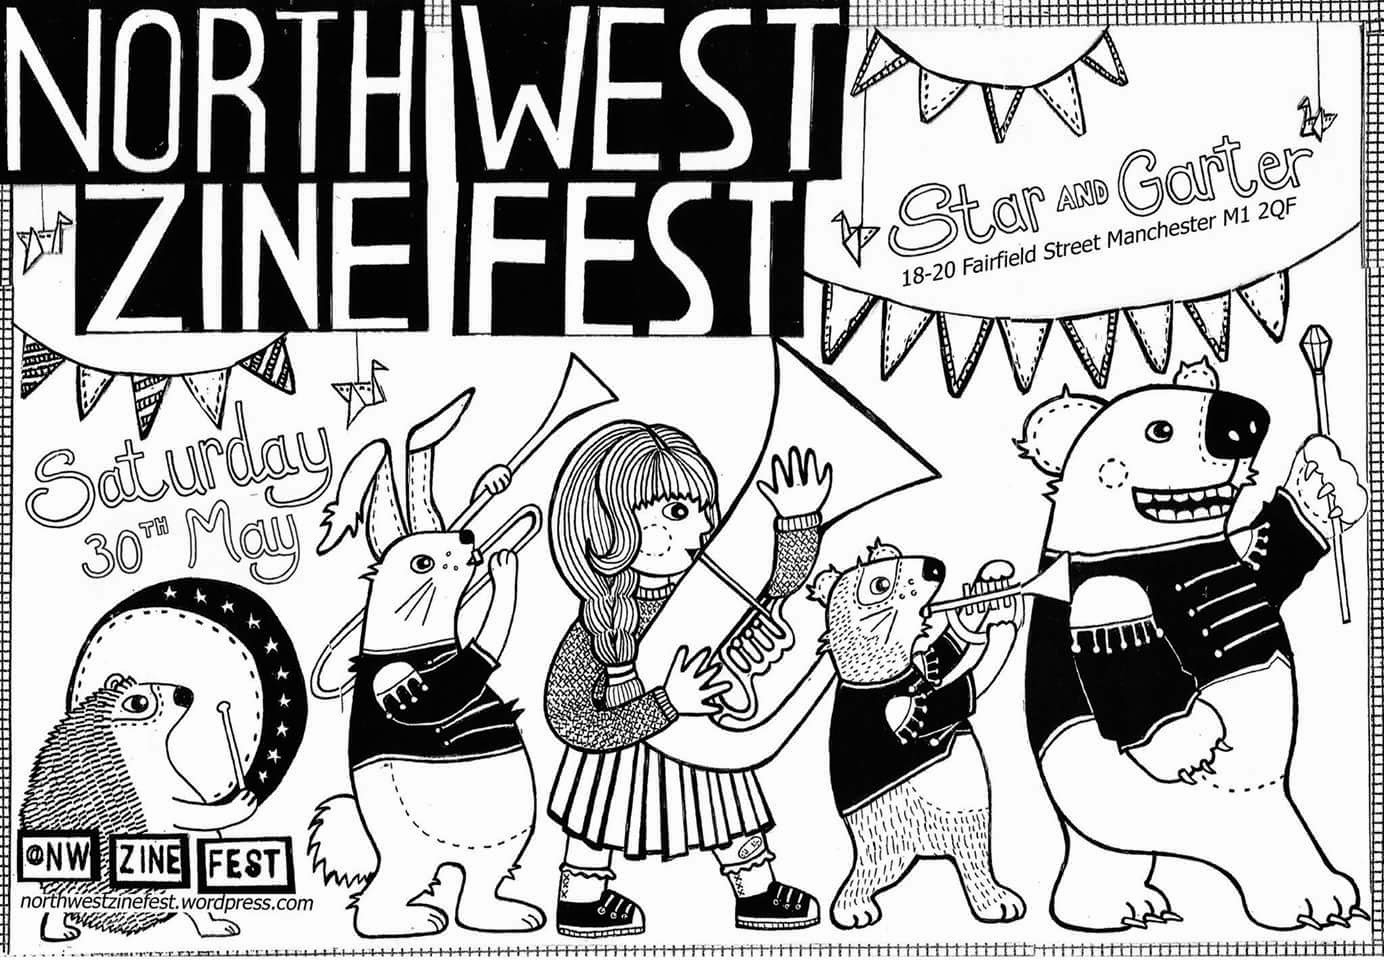 https://northwestzinefest.wordpress.com/location/